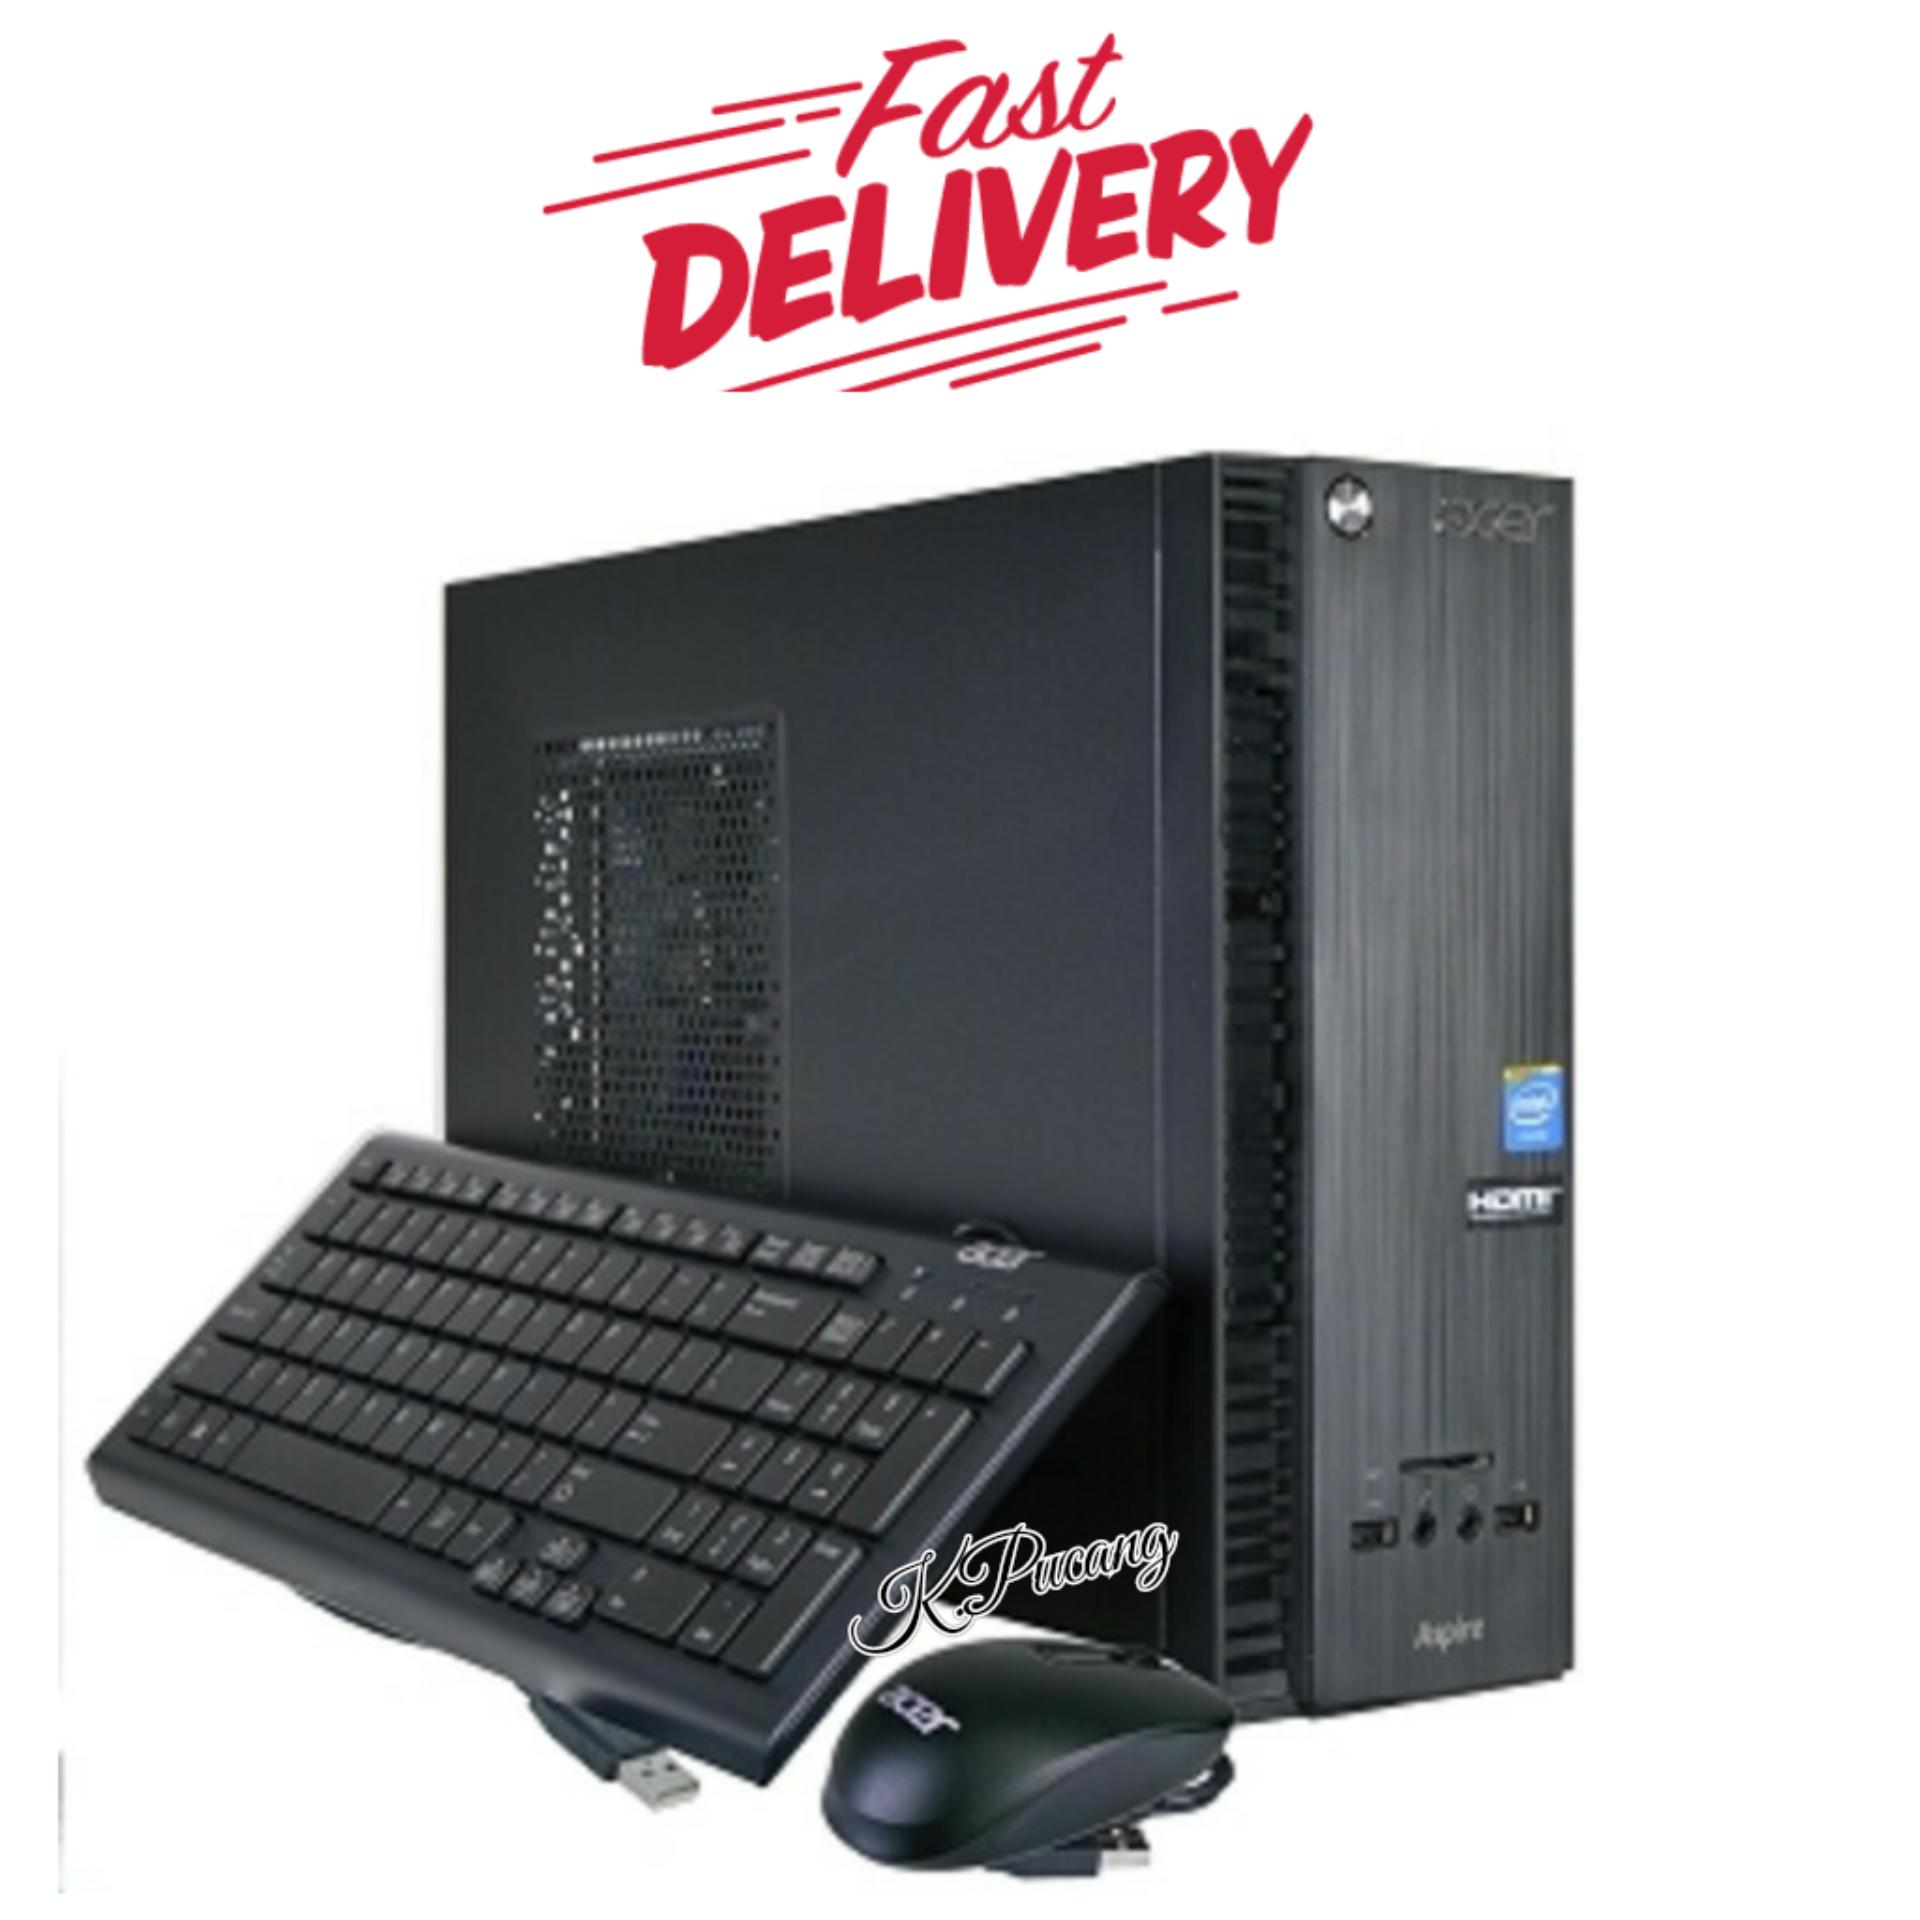 Iklan Pc Built Up Acer Aspire Xc 704G Intel Celeron Cpu N3050 4Gb Ram 500Gb Hdd Windows 10 Home Black Free Asuransi Paket